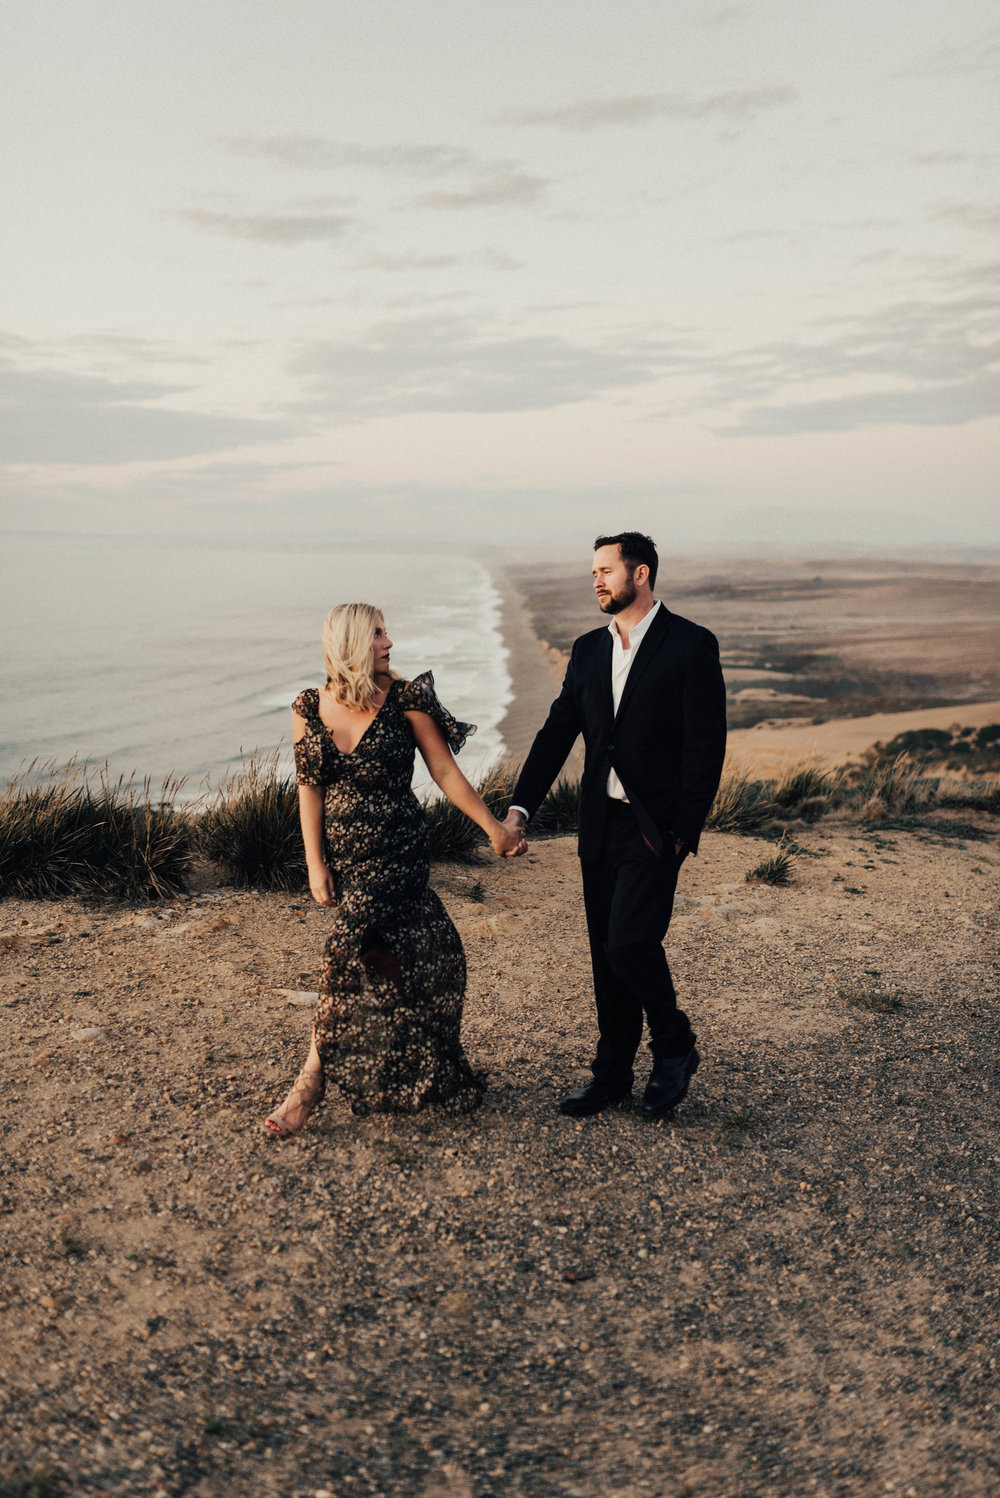 MAEGAN + JOHN - Point Reyes National Seashore